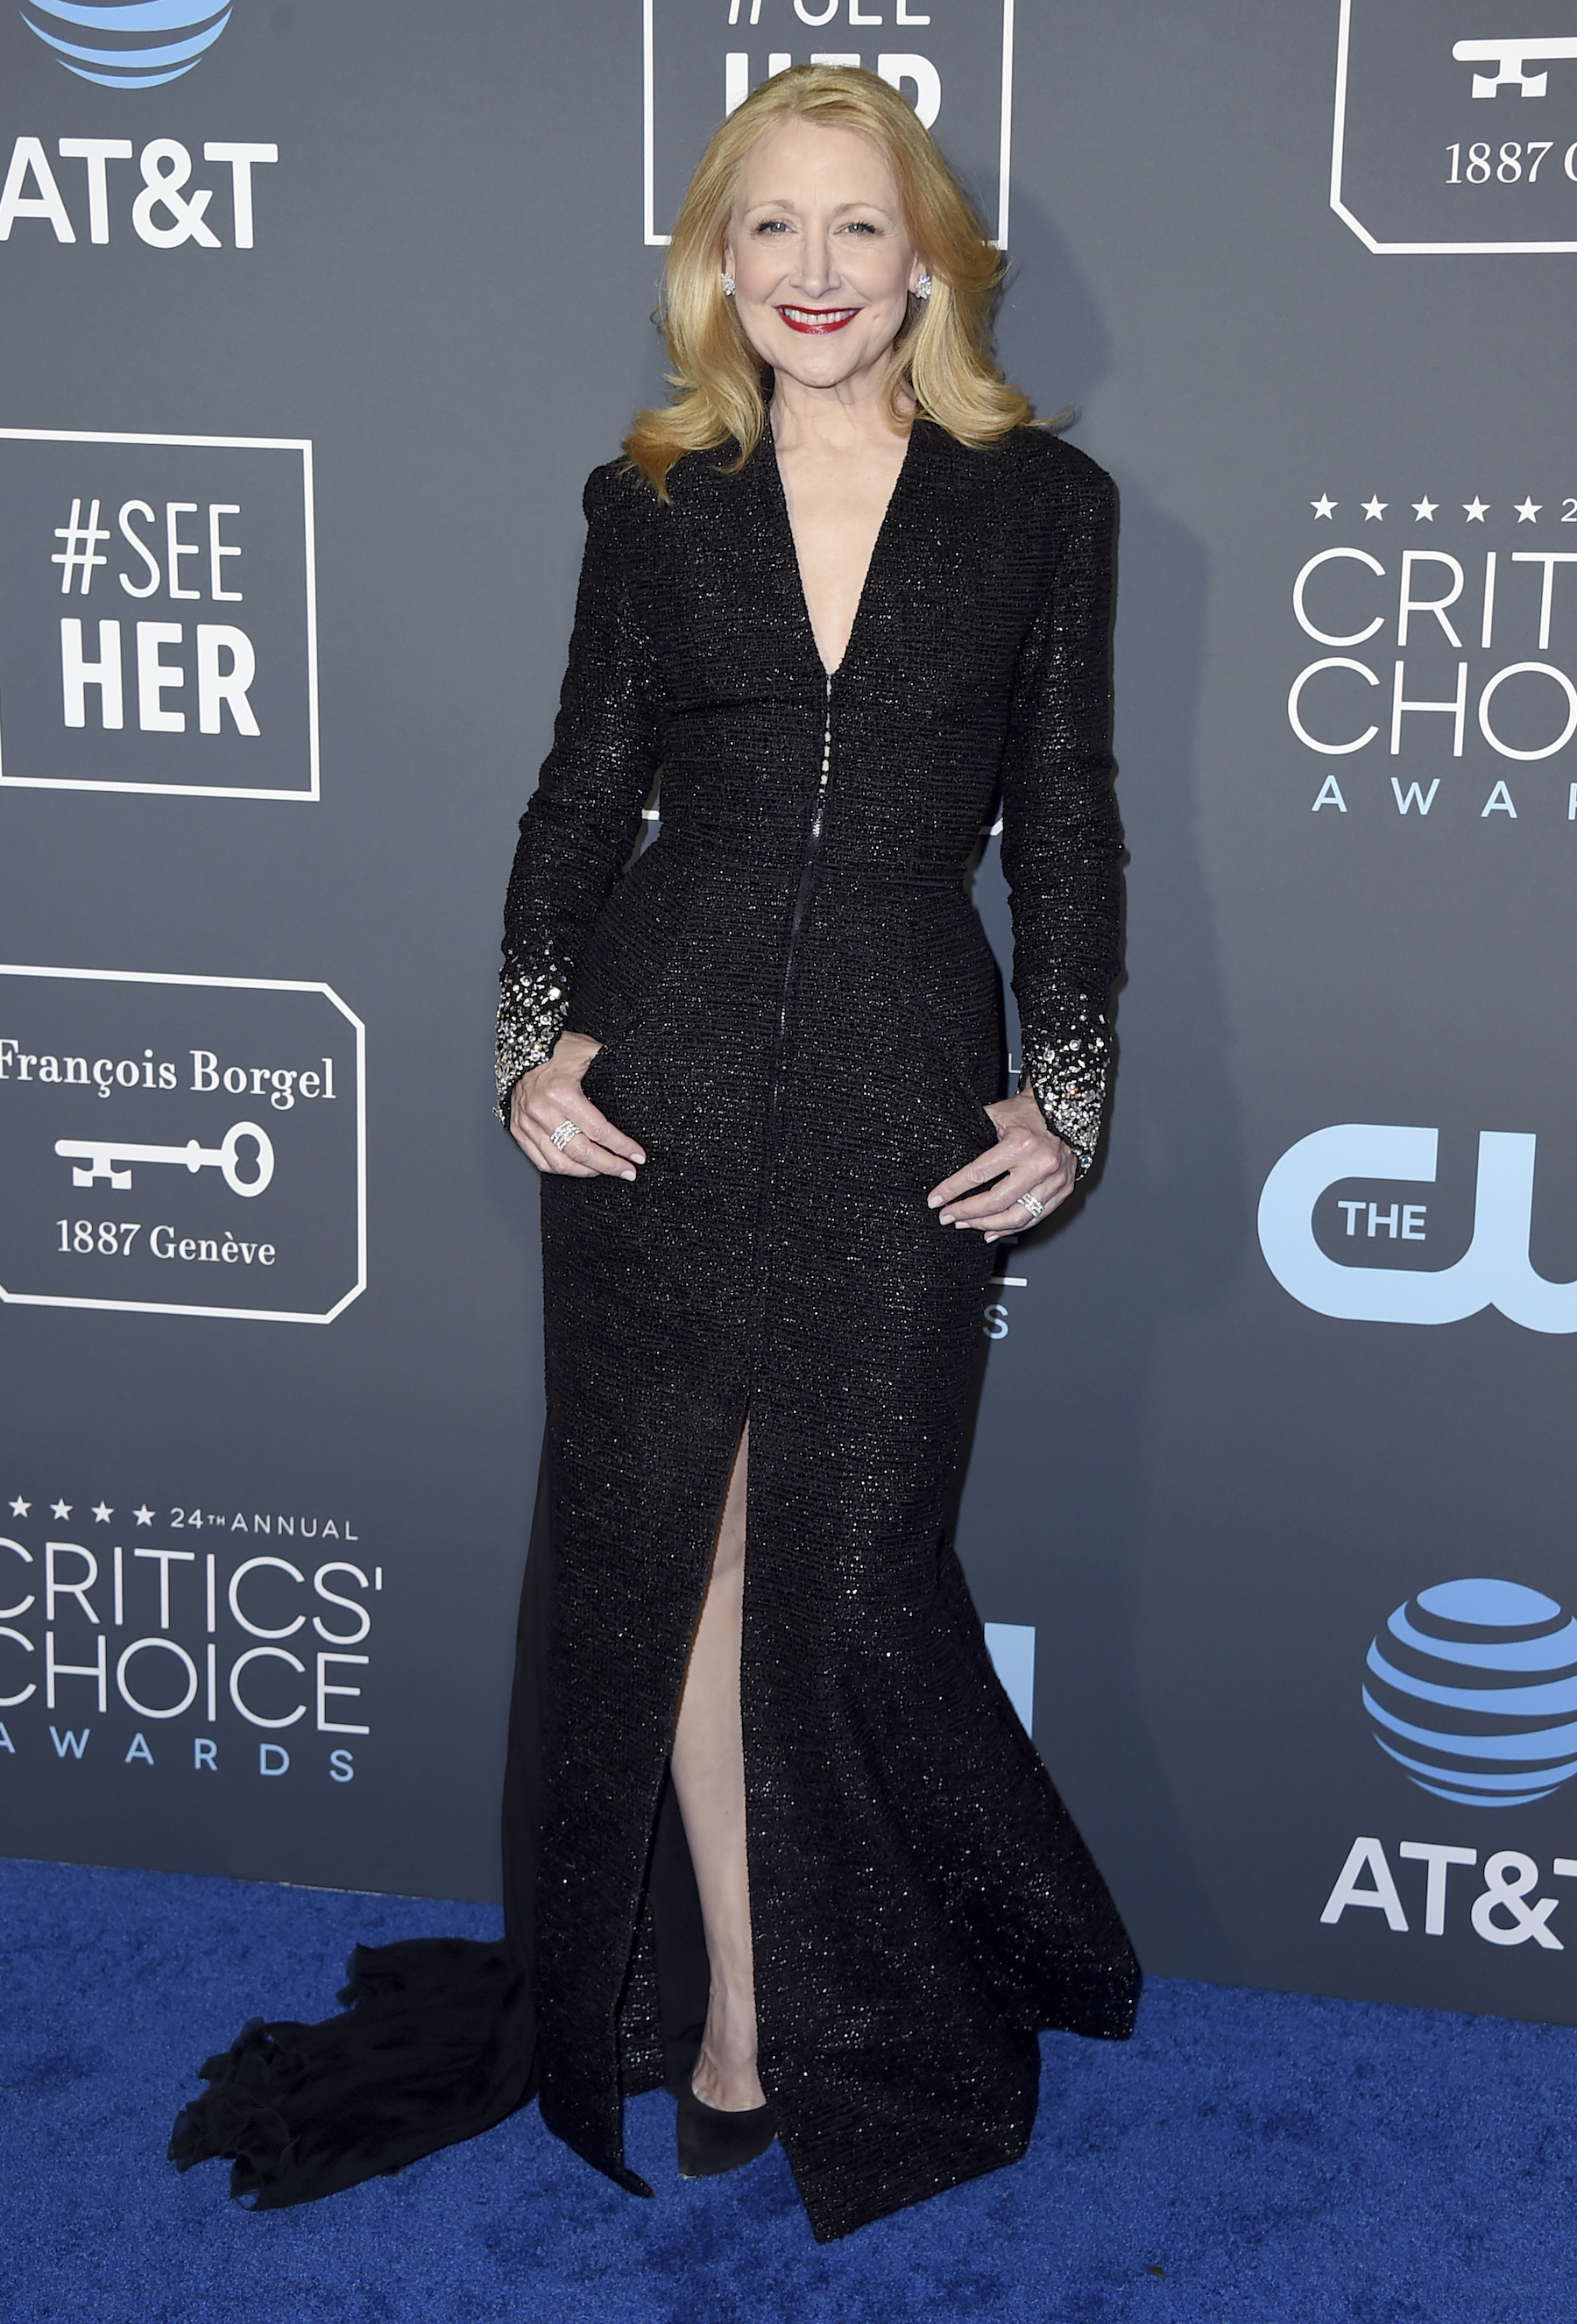 "<div class=""meta image-caption""><div class=""origin-logo origin-image ap""><span>AP</span></div><span class=""caption-text"">Patricia Clarkson arrives at the 24th annual Critics' Choice Awards on Sunday, Jan. 13, 2019, at the Barker Hangar in Santa Monica, Calif. (Jordan Strauss/Invision/AP)</span></div>"